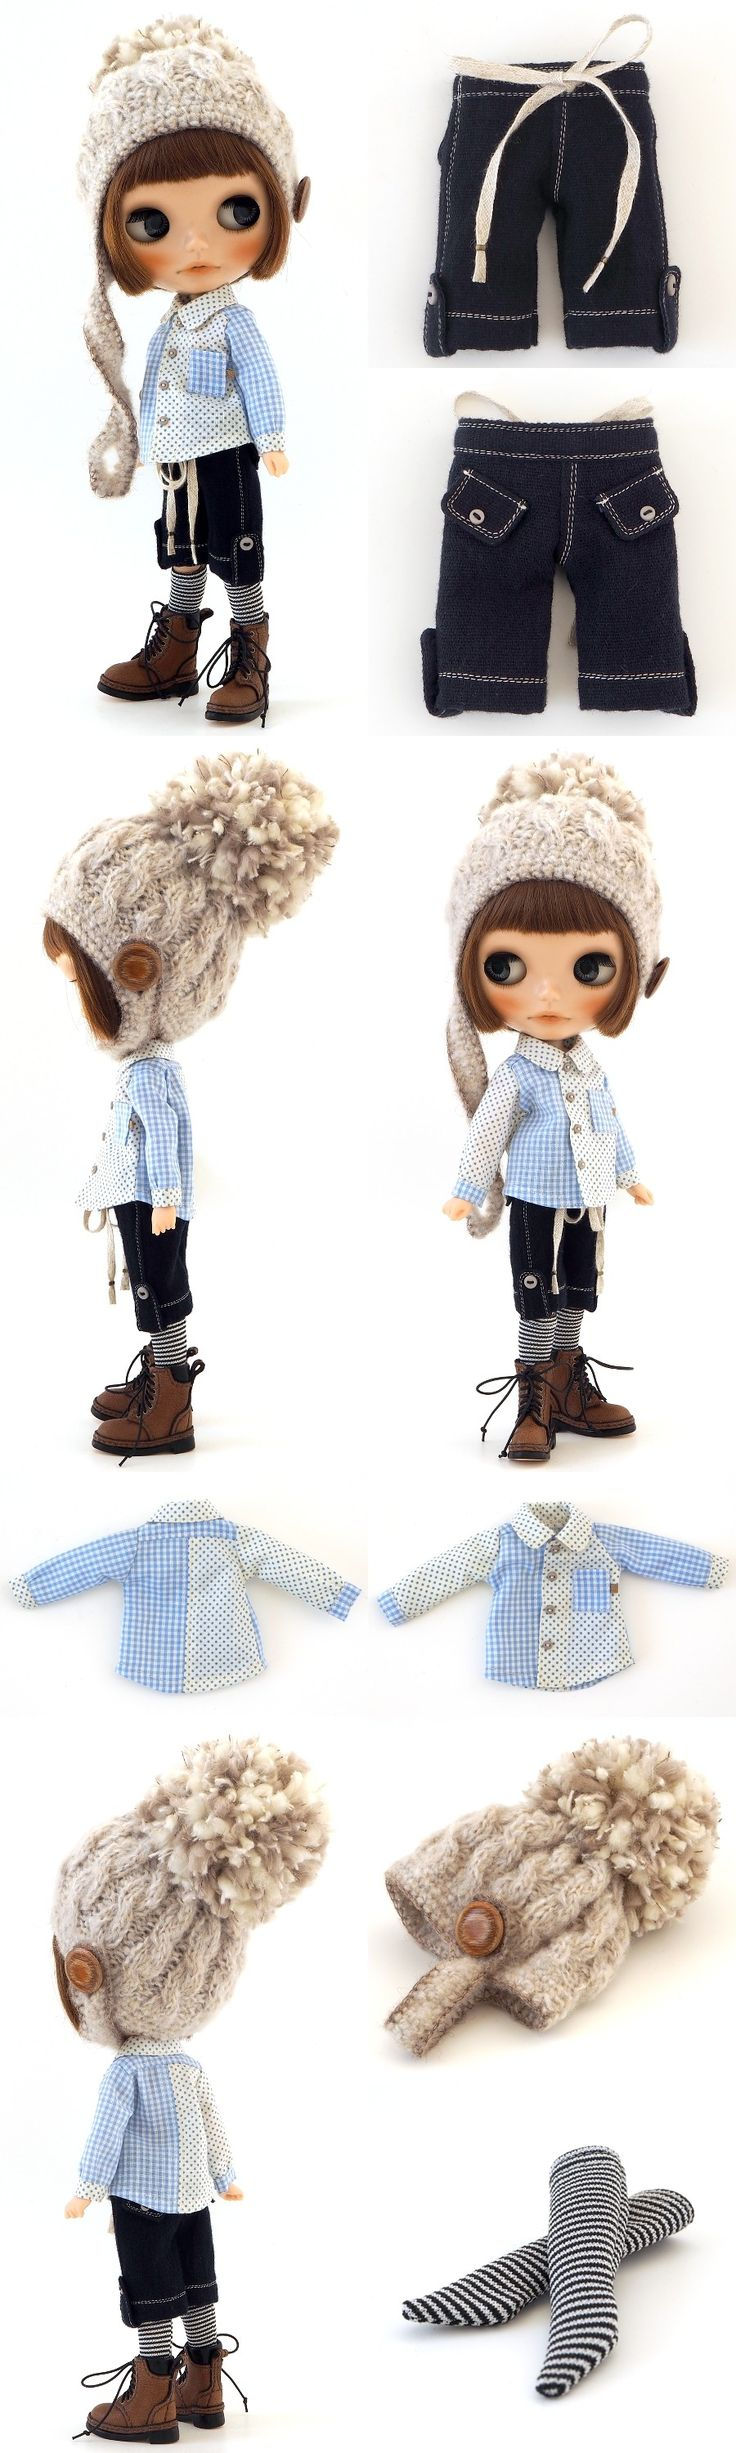 ** Blythe outfit ** Lucalily 436 ** - ヤフオク!